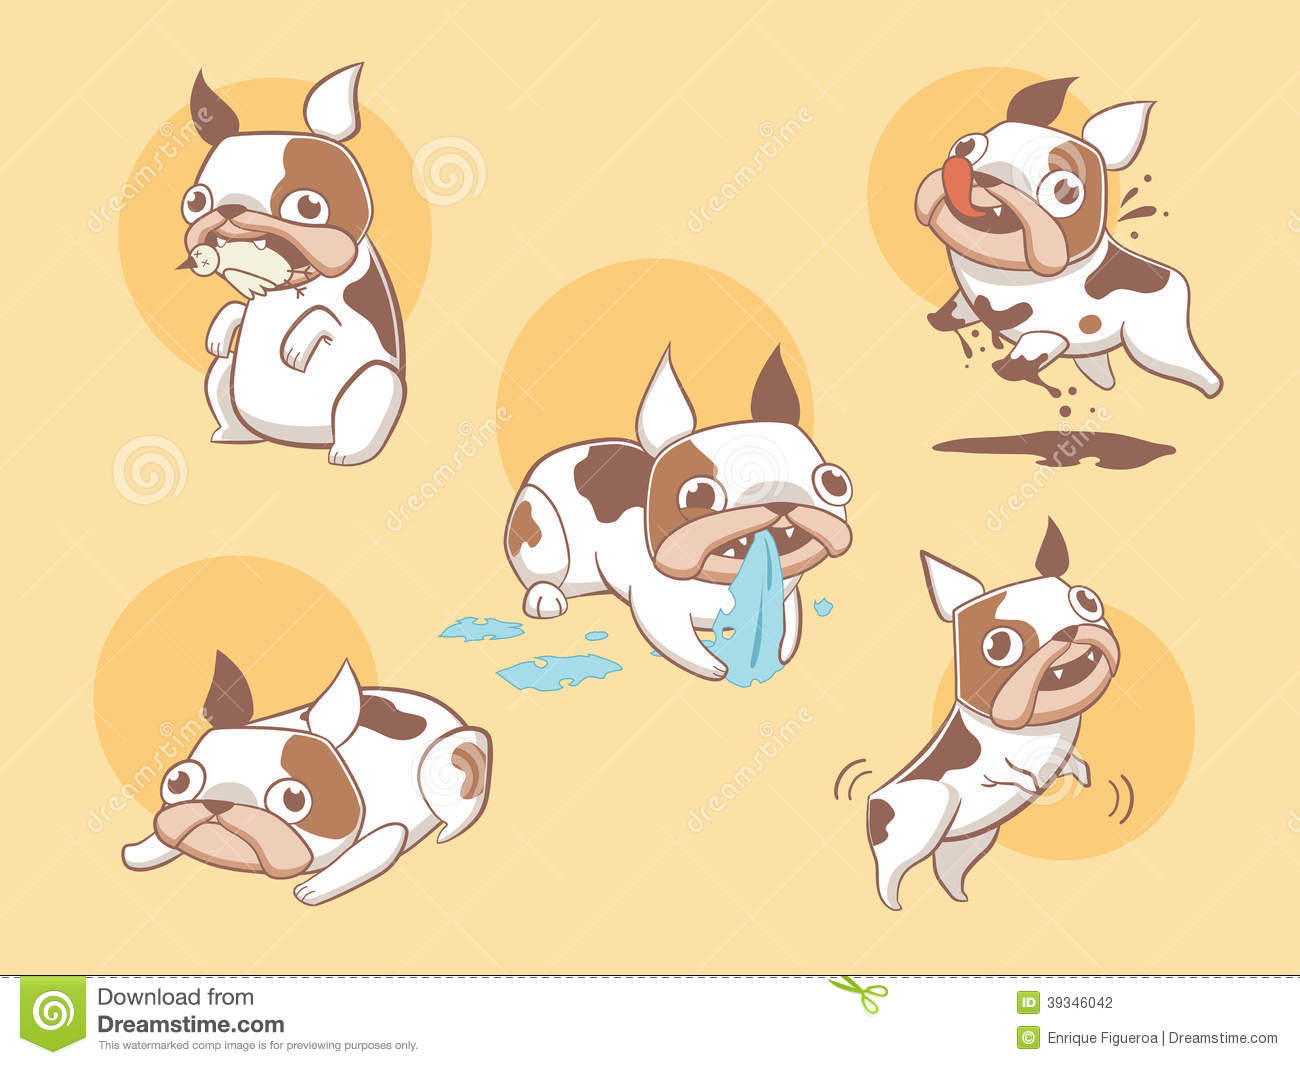 Playful Cute French Bulldog Dogs Stock Vector - Image: 39346042